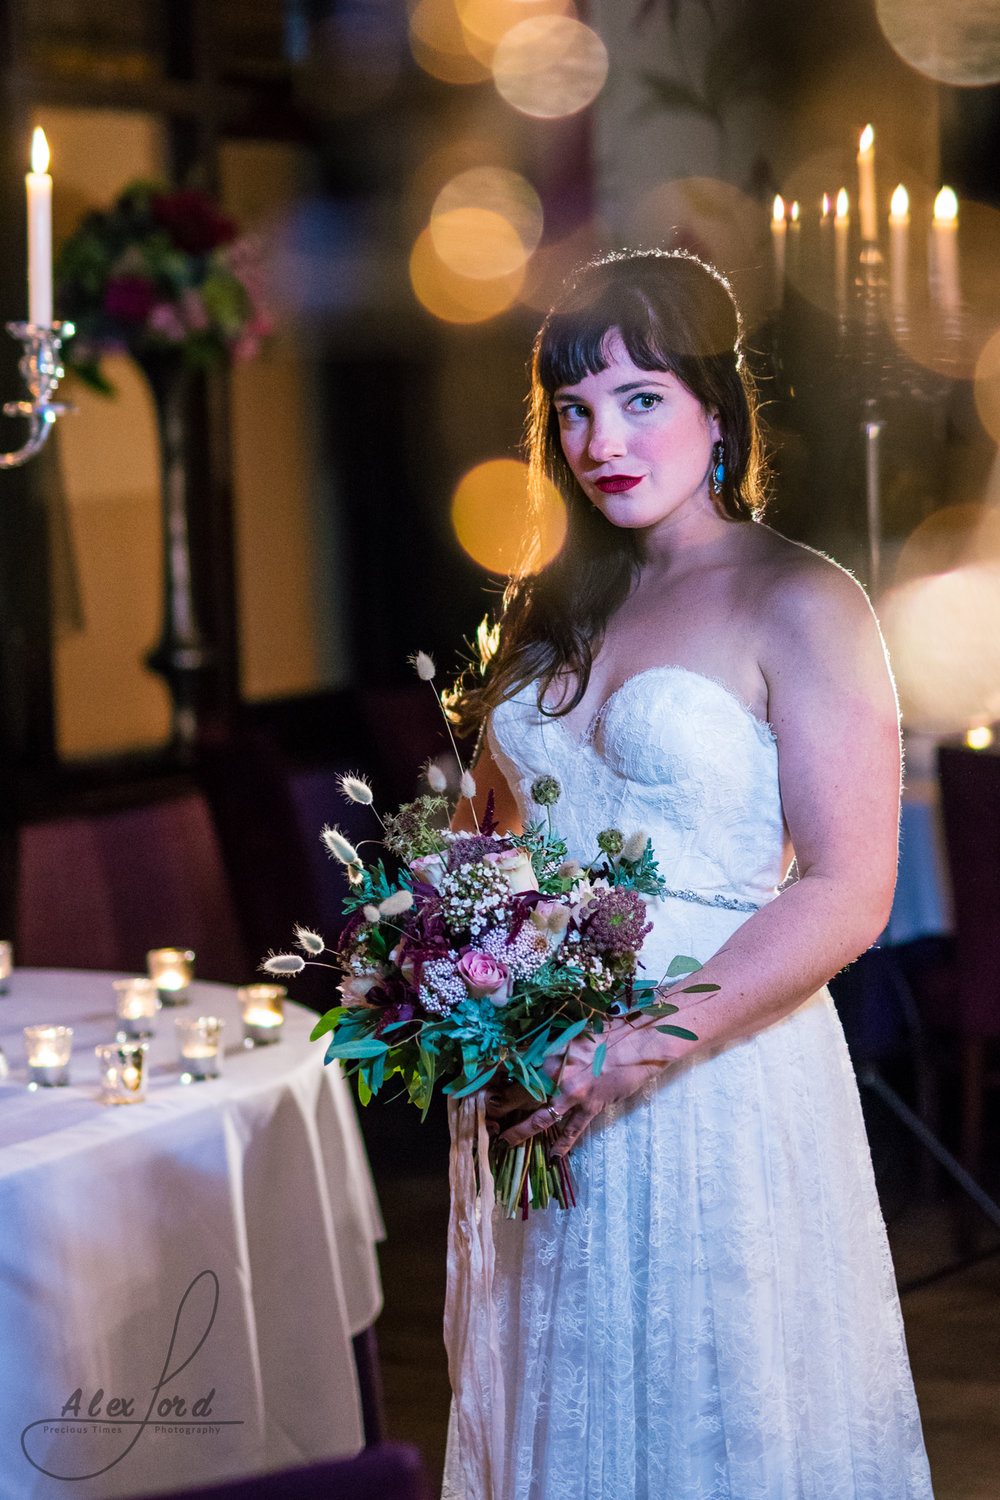 stunning bride dressed in a lace wedding dress standing holding her bouquet